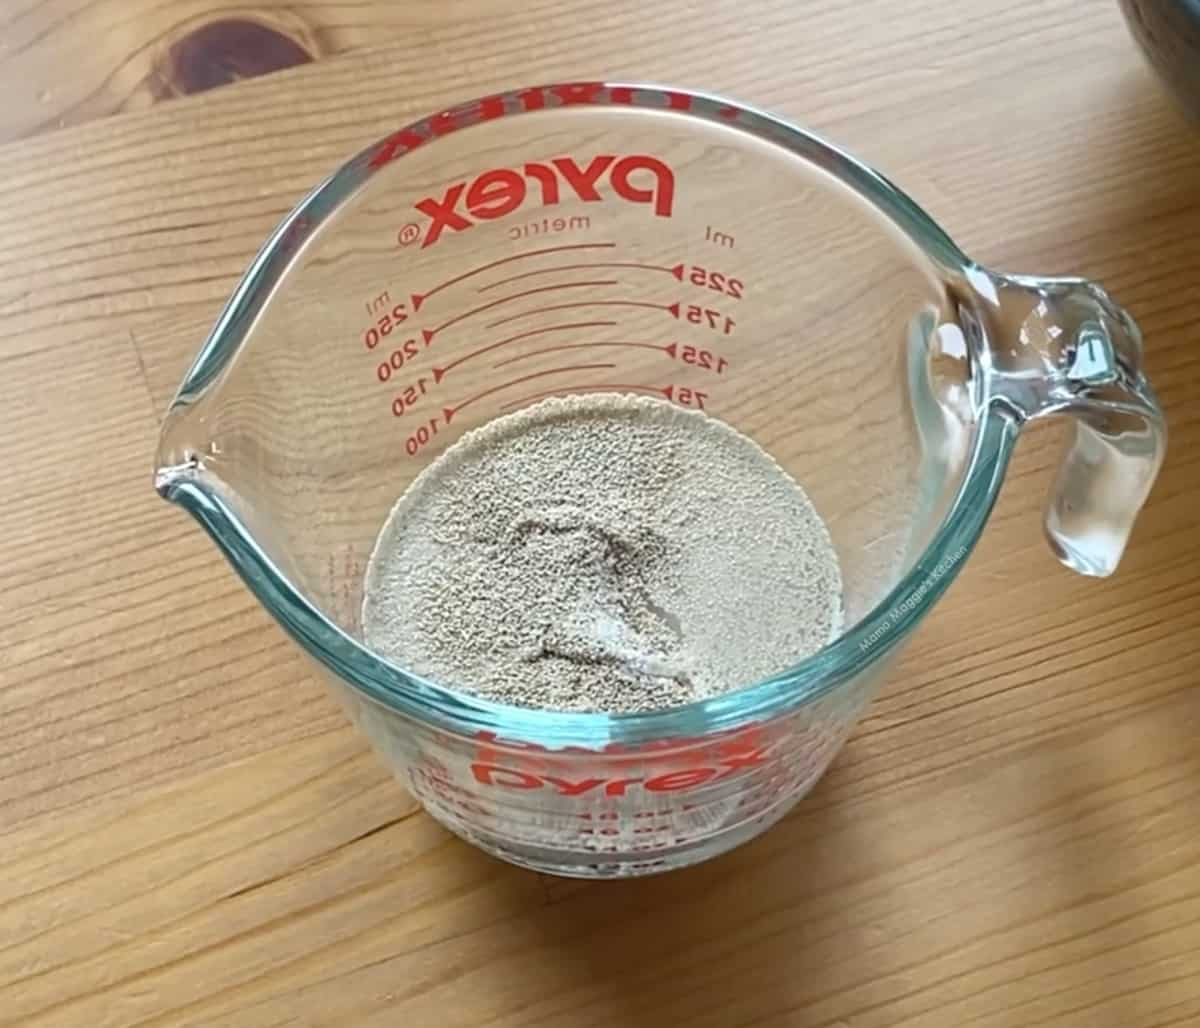 A measuring cut with yeast and water.